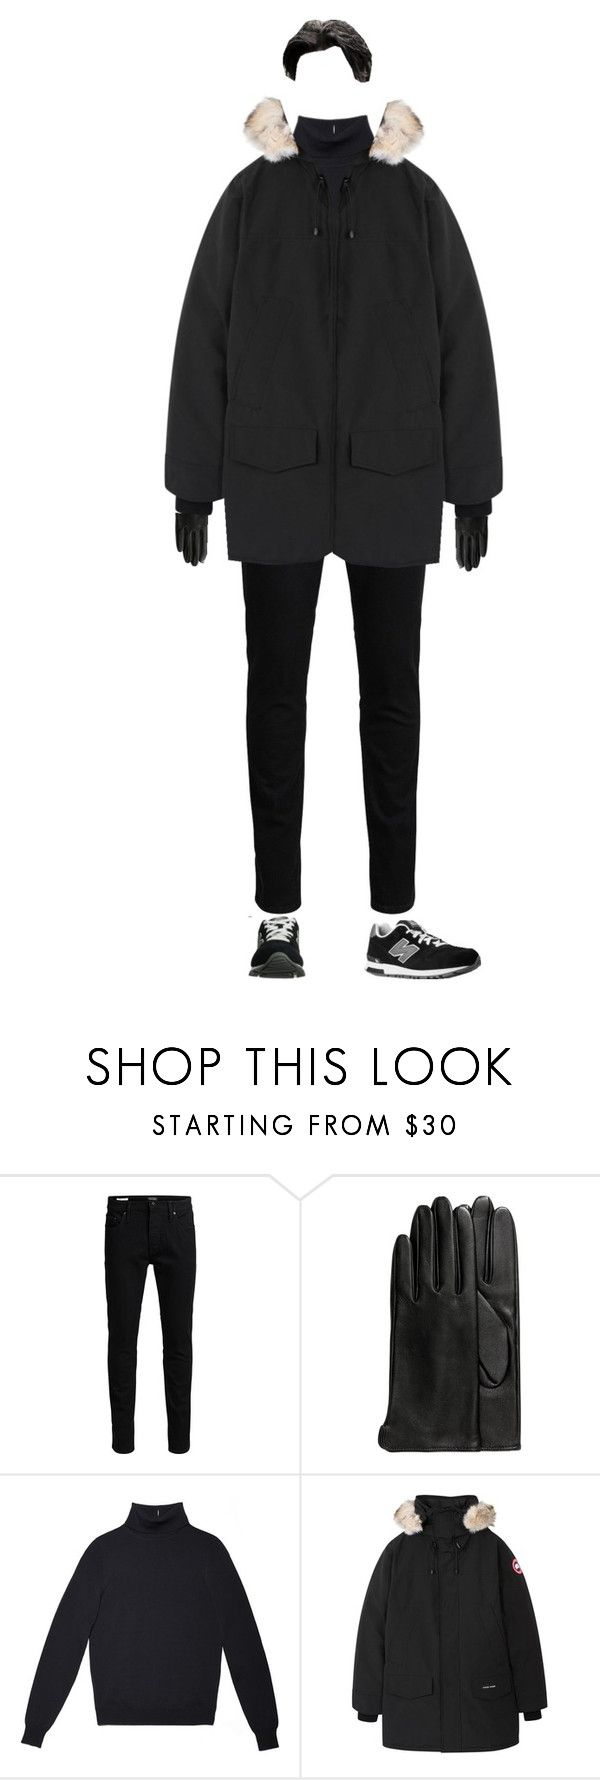 """""""{ ryosei's first appearance"""" by salt-sugar ❤ liked on Polyvore featuring Jack & Jones, H&M, Canada Goose, New Balance, men's fashion and menswear"""